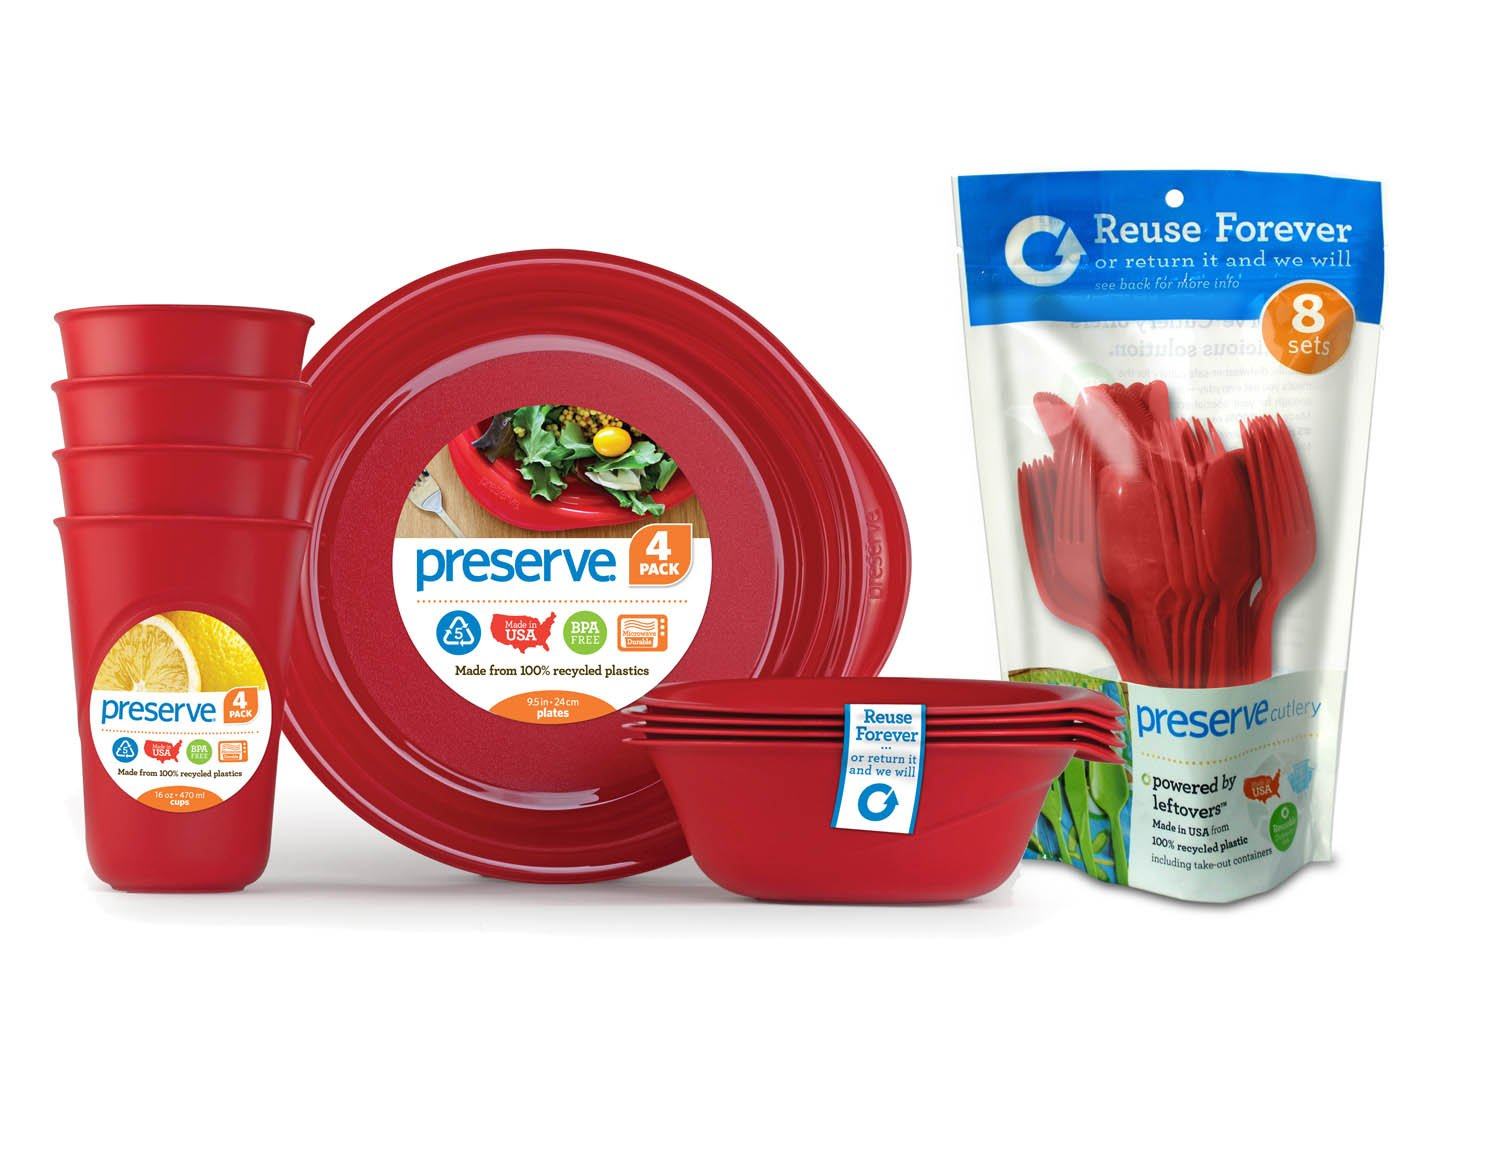 Preserve Everyday Tableware Set with Cutlery, Pepper Red